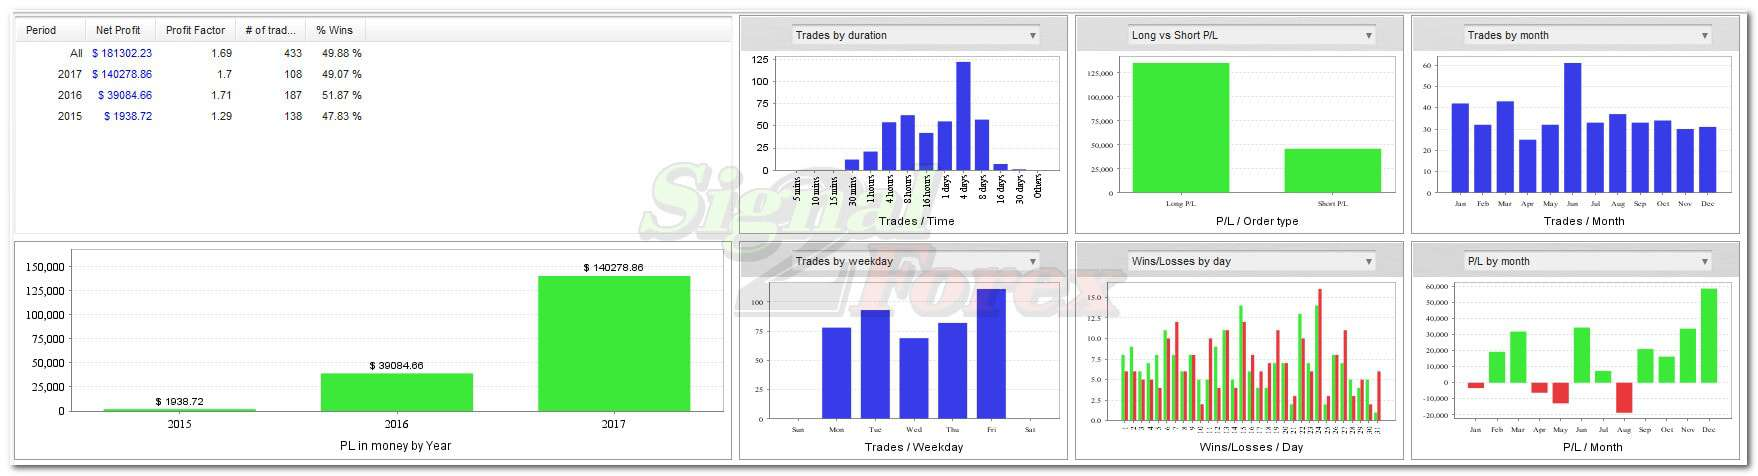 Binary options trading system strategy formulations